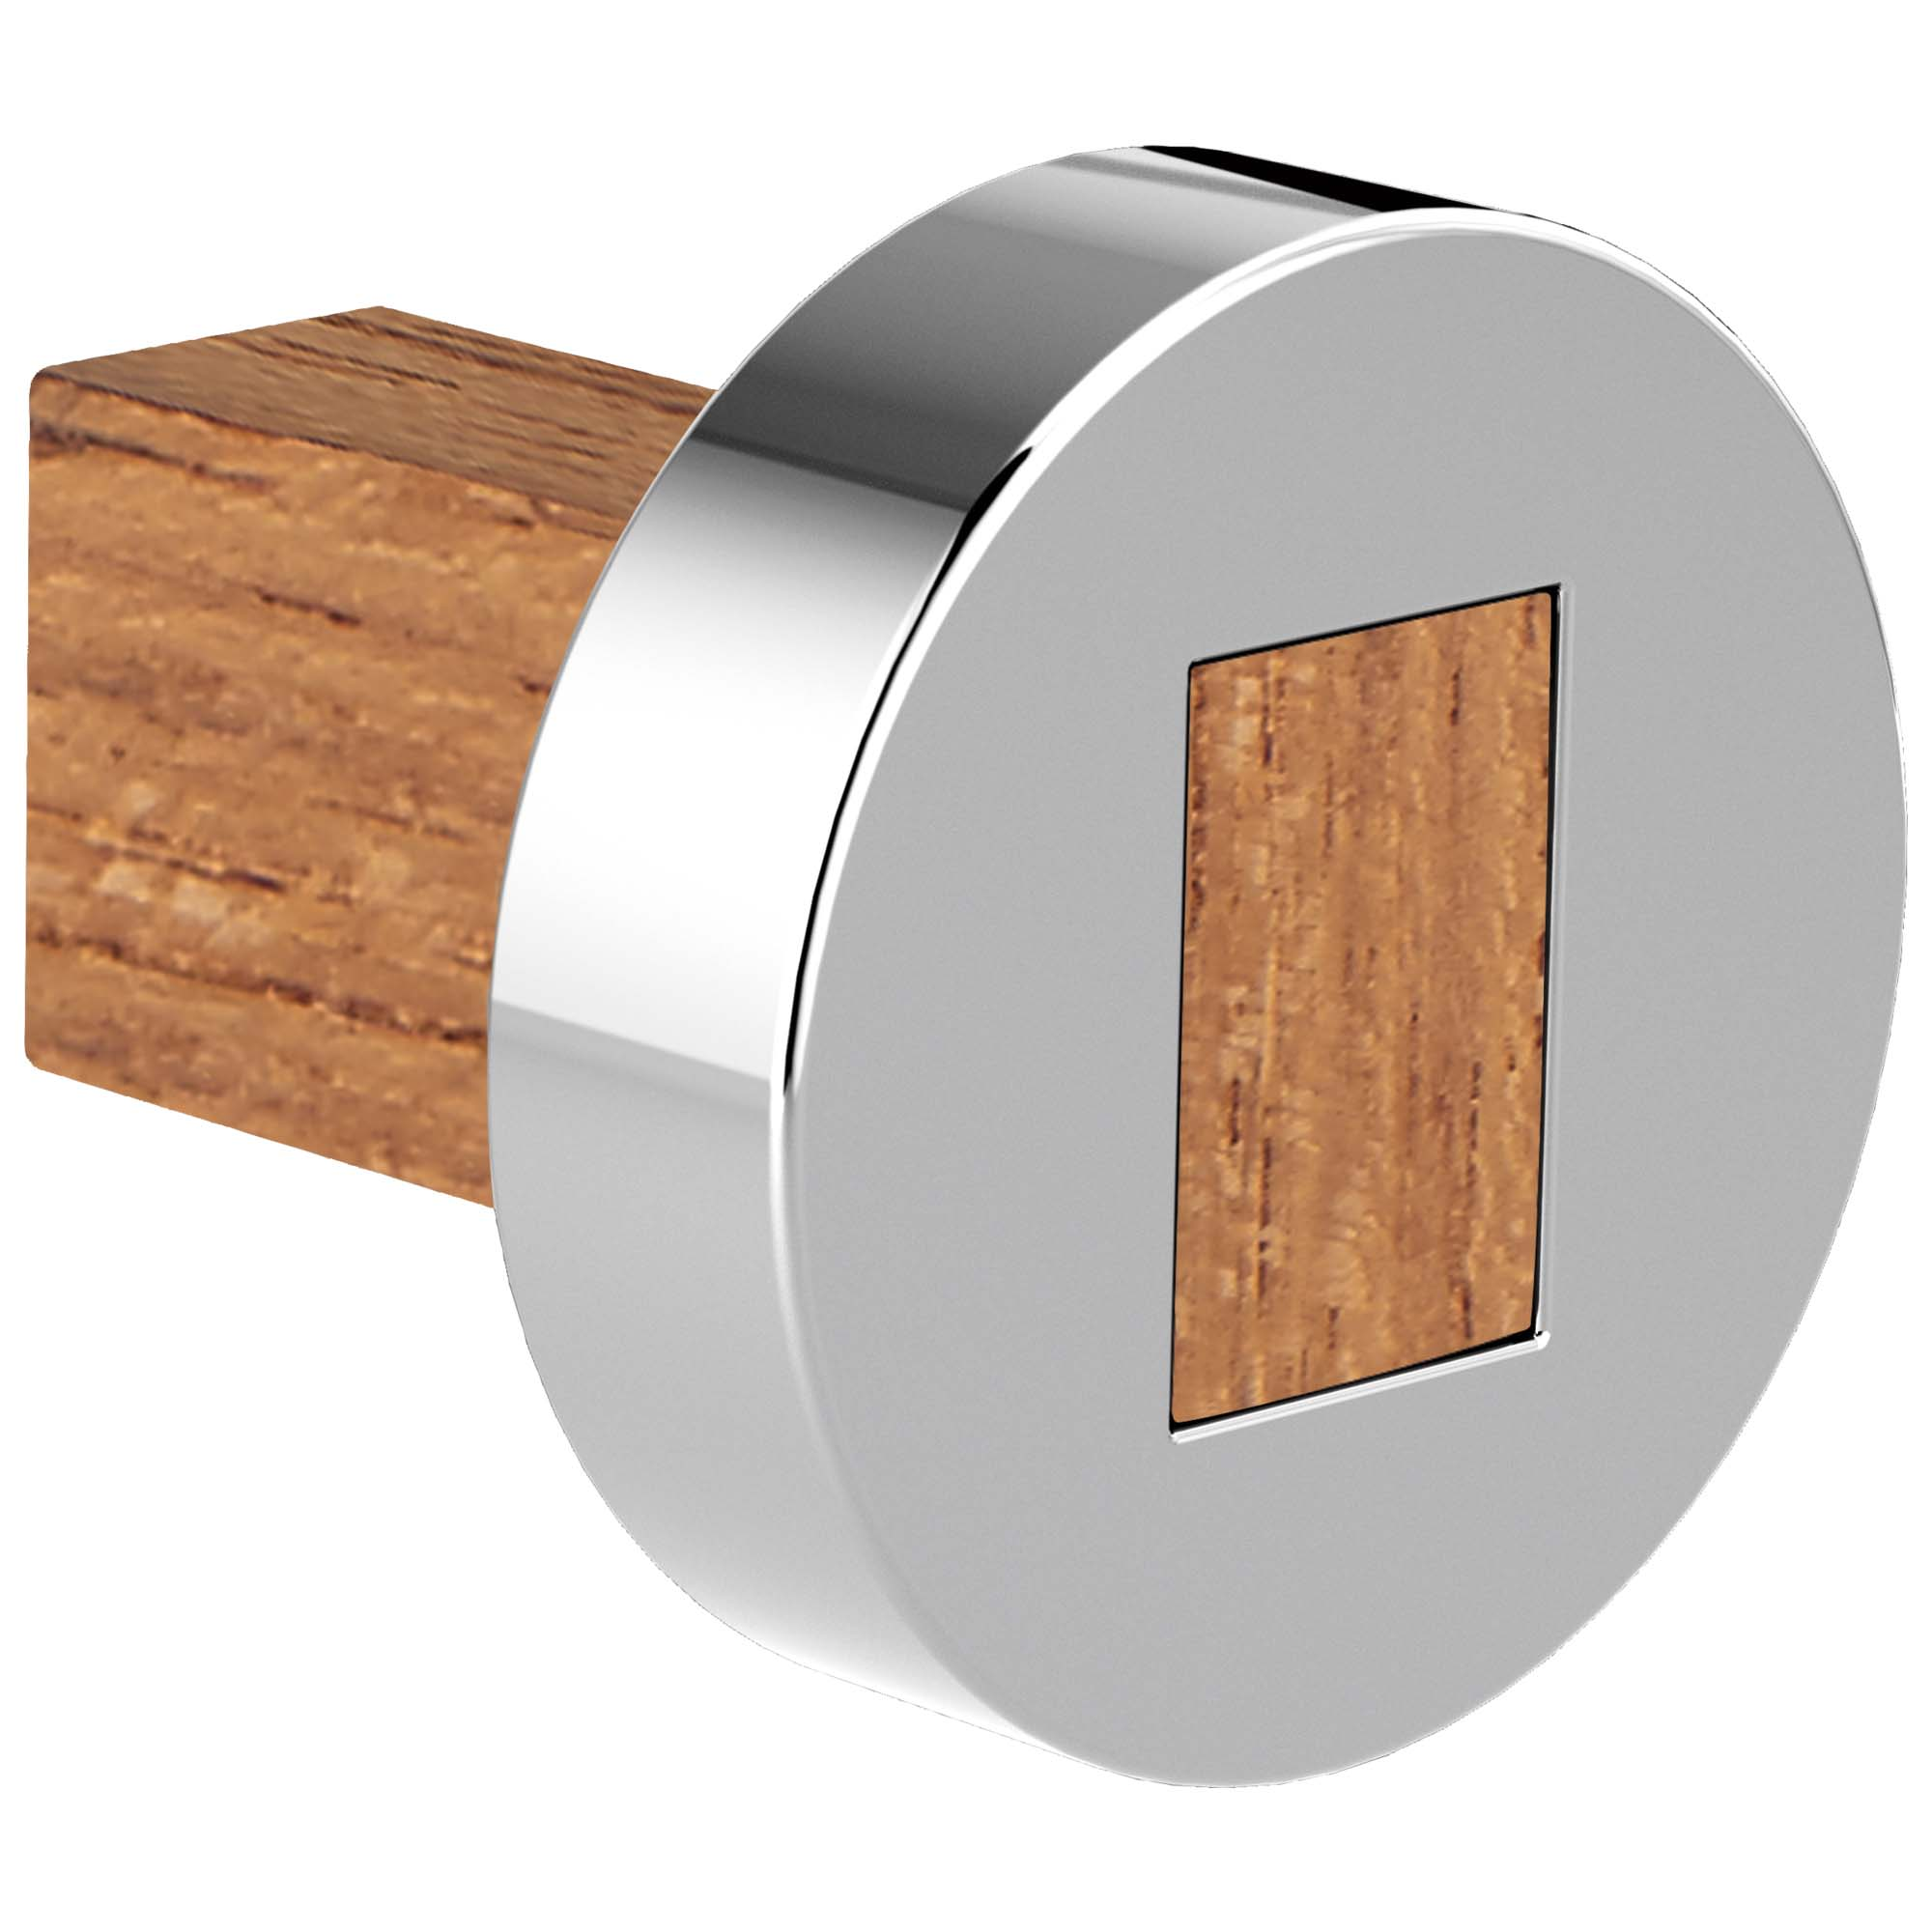 Brizo 699235-PCTK Litze Drawer Knob - Polished Chrome/Teak Wood